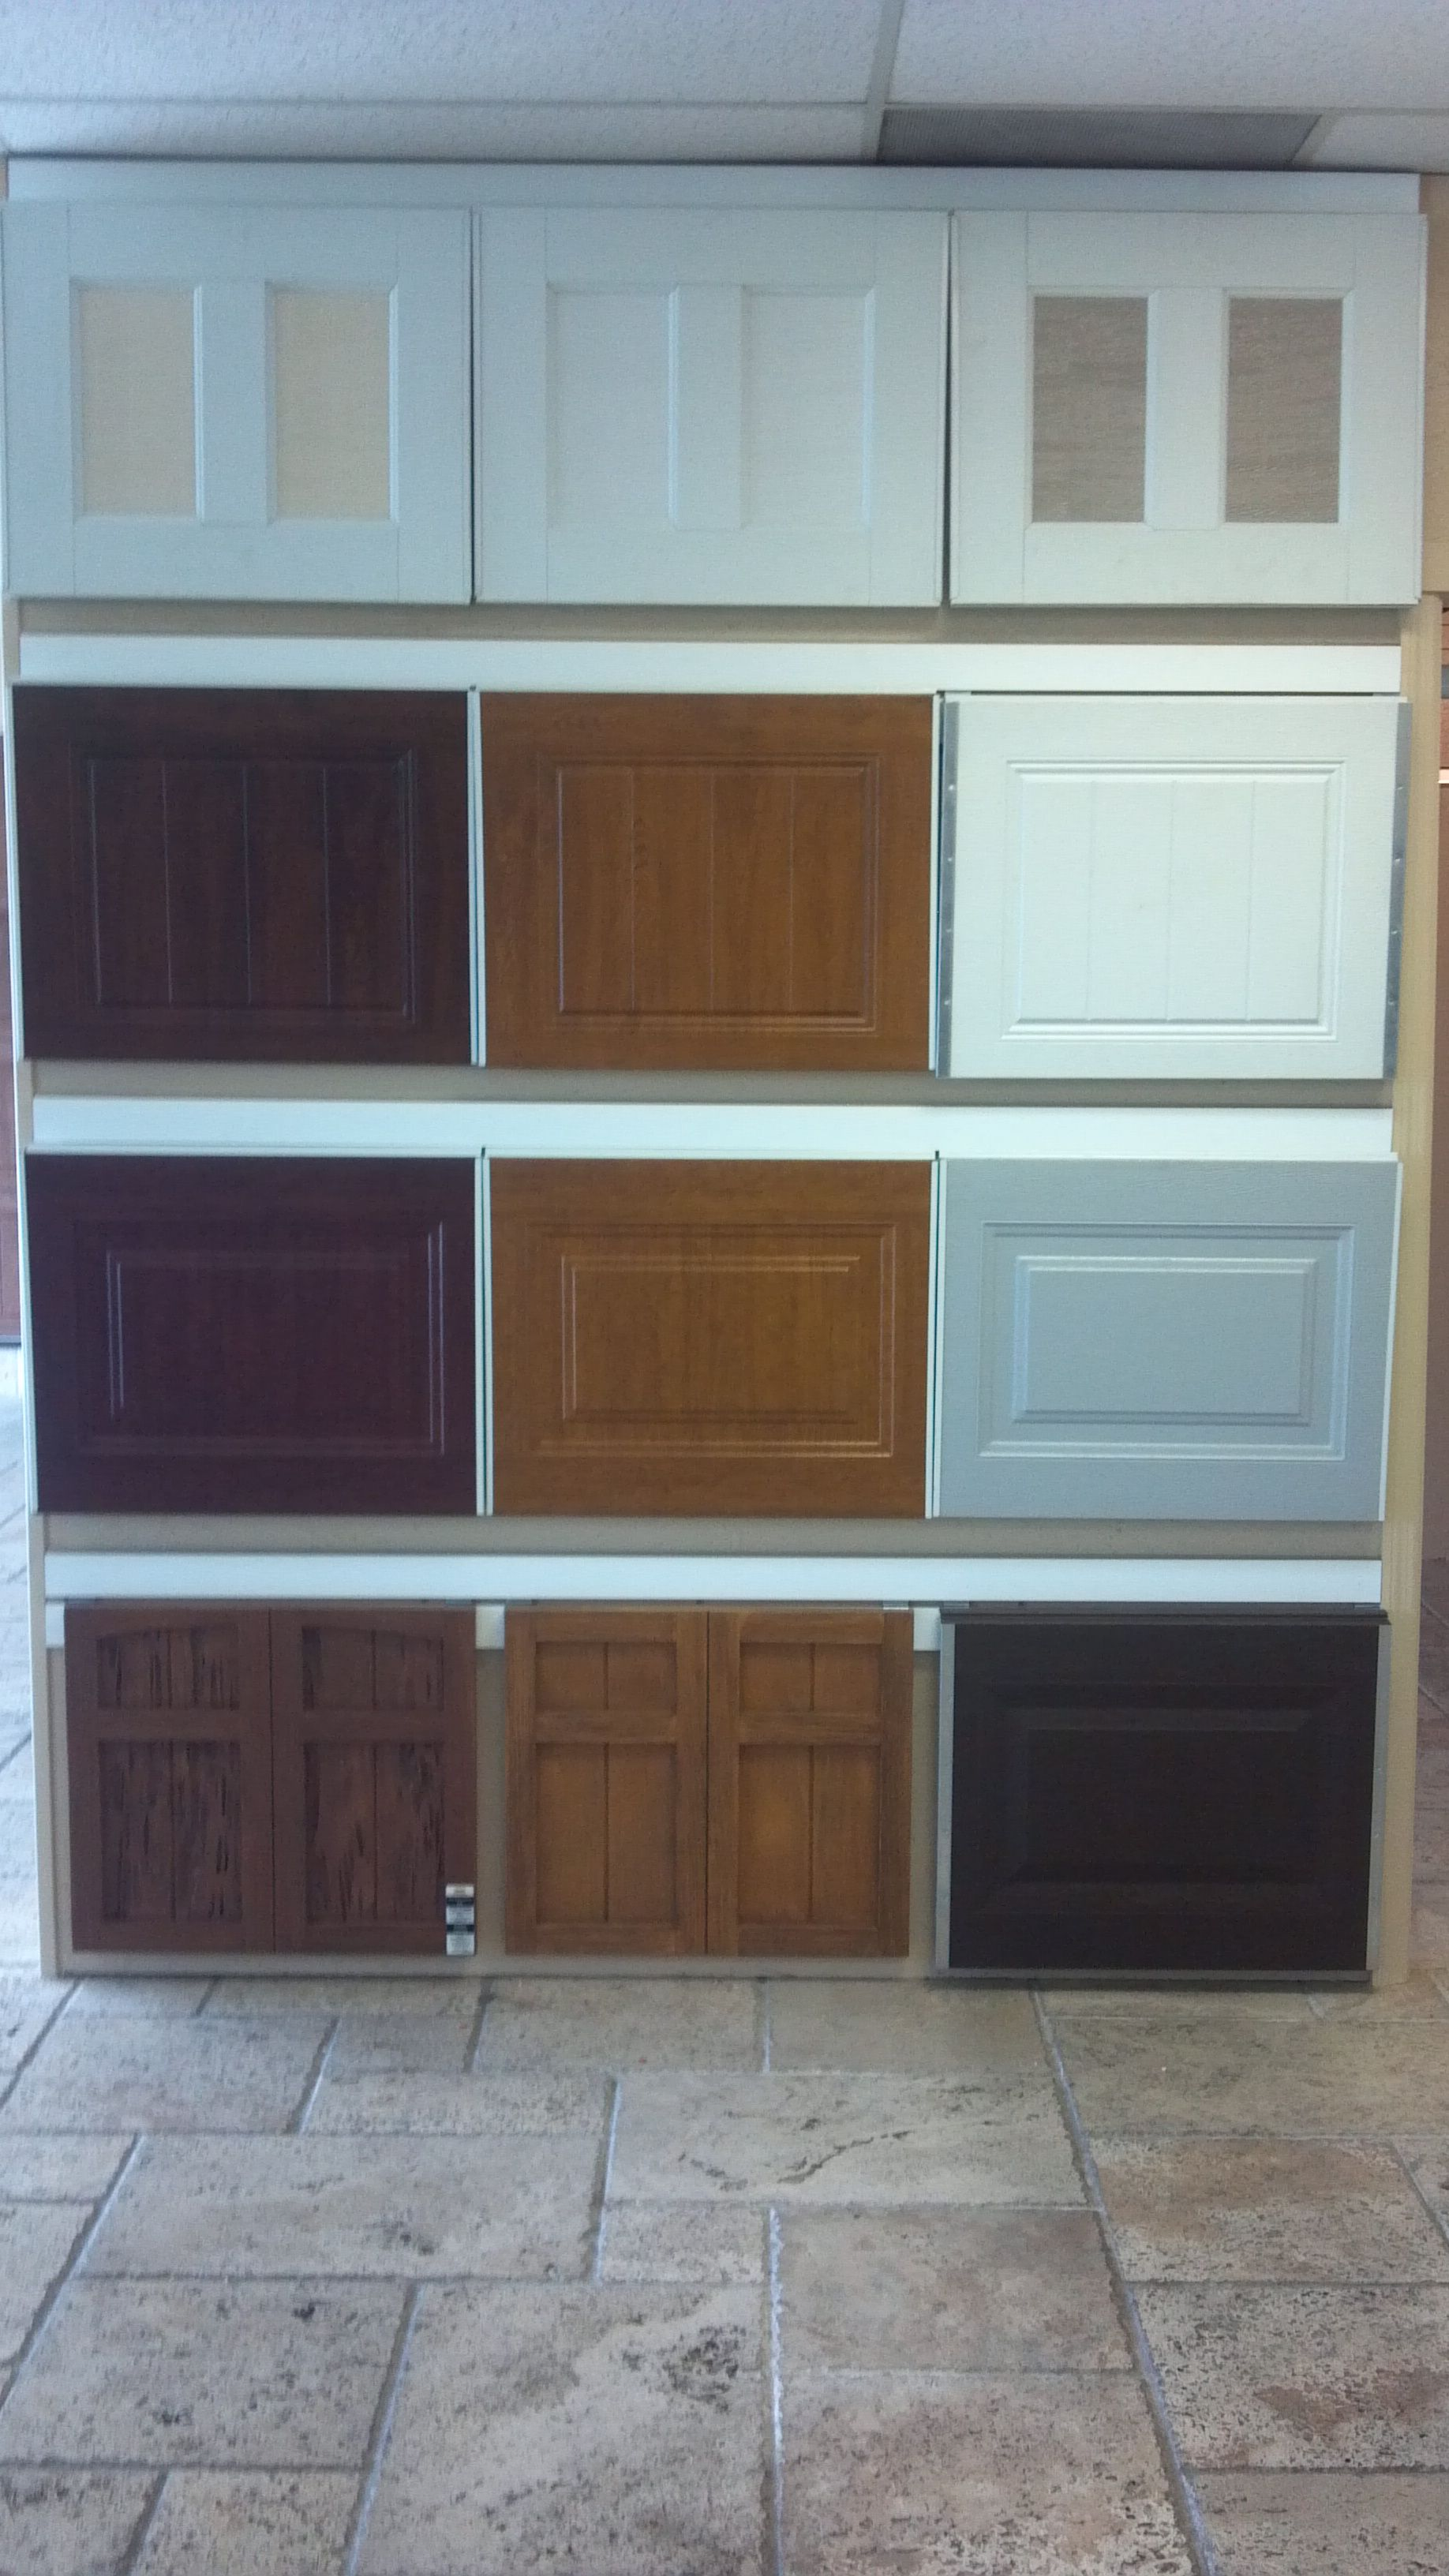 for request commercial inspiration to garage full also residential your important upgrades plan companies chicagoland door mercial unusual doors quote of in fresh decor general size a northwest amp tips